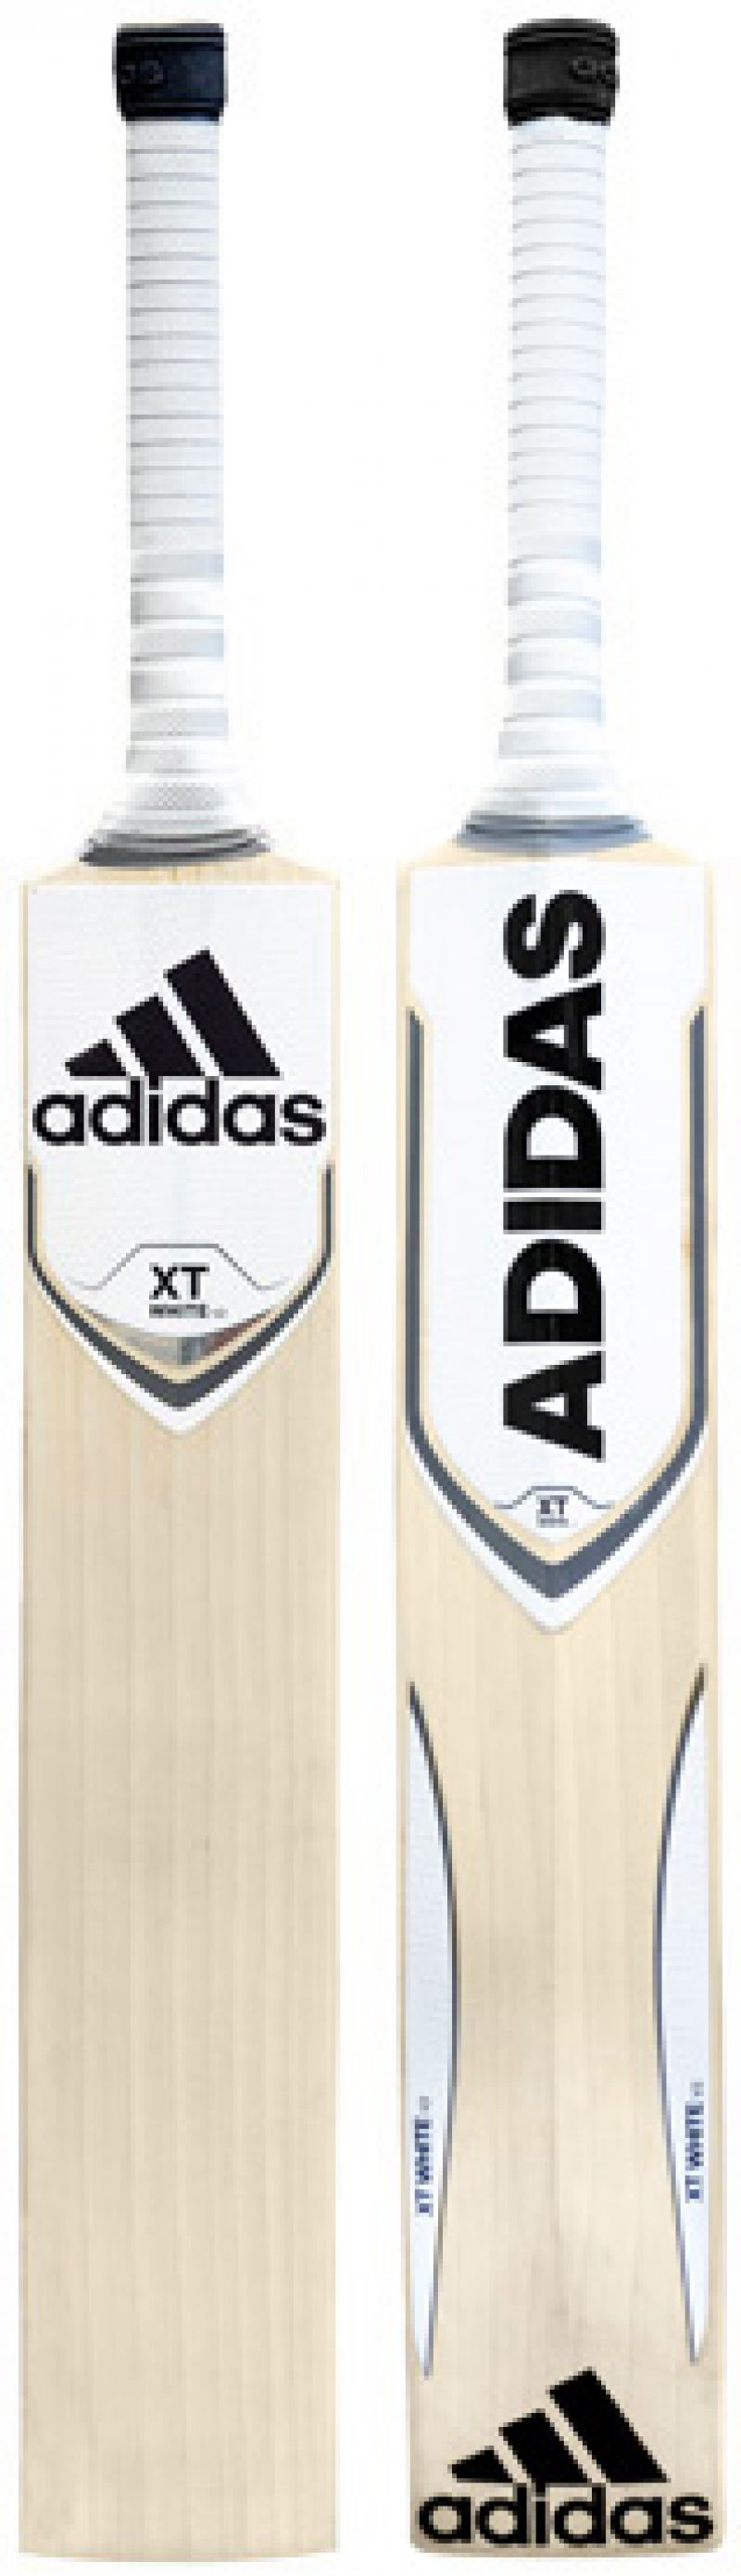 Adidas XT White 4.0 Cricket Bat